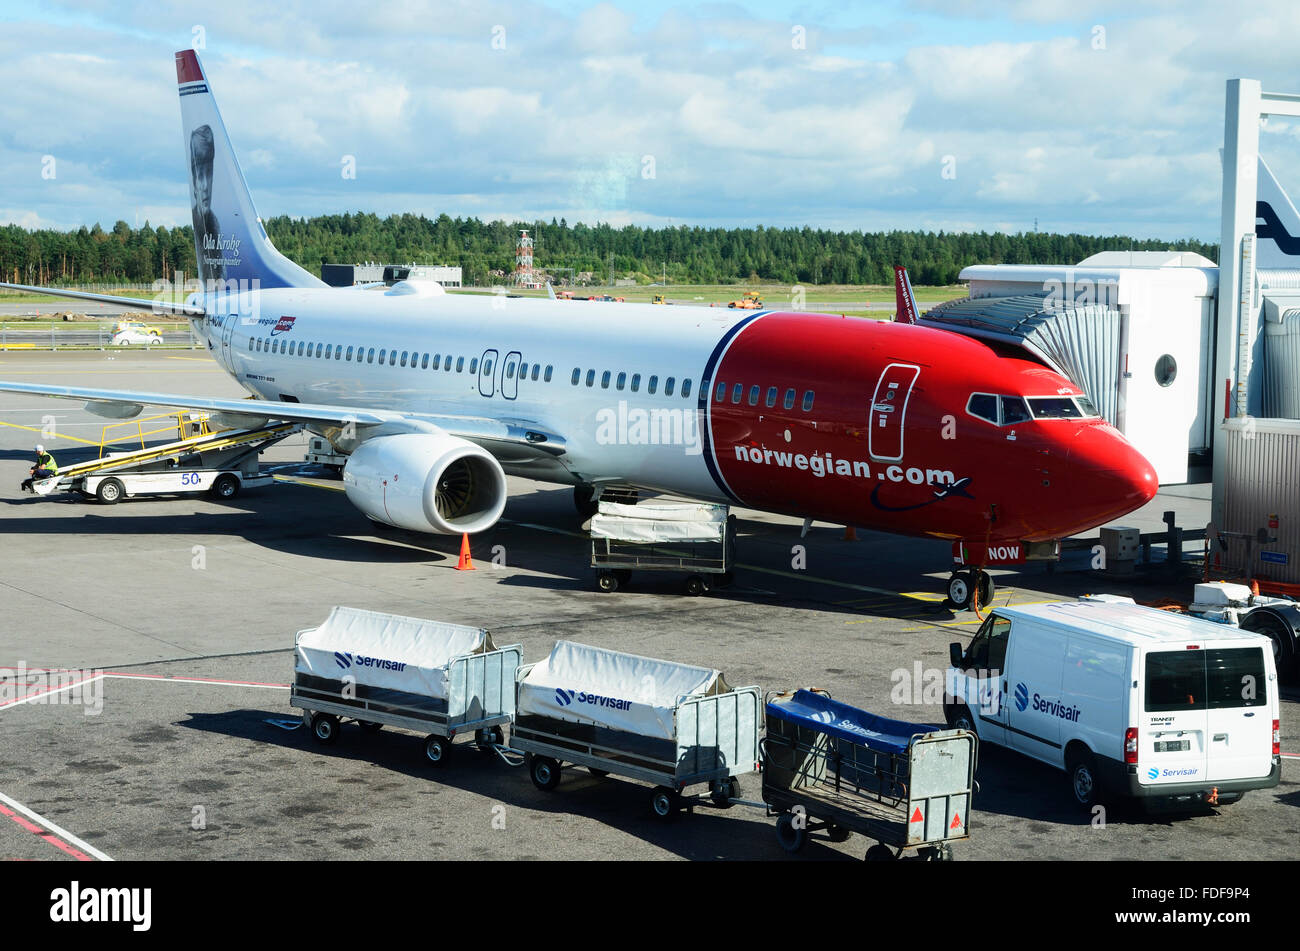 Docked, Norwegian Airline, aircraft in the Helsinki Airport. Finland - Stock Image